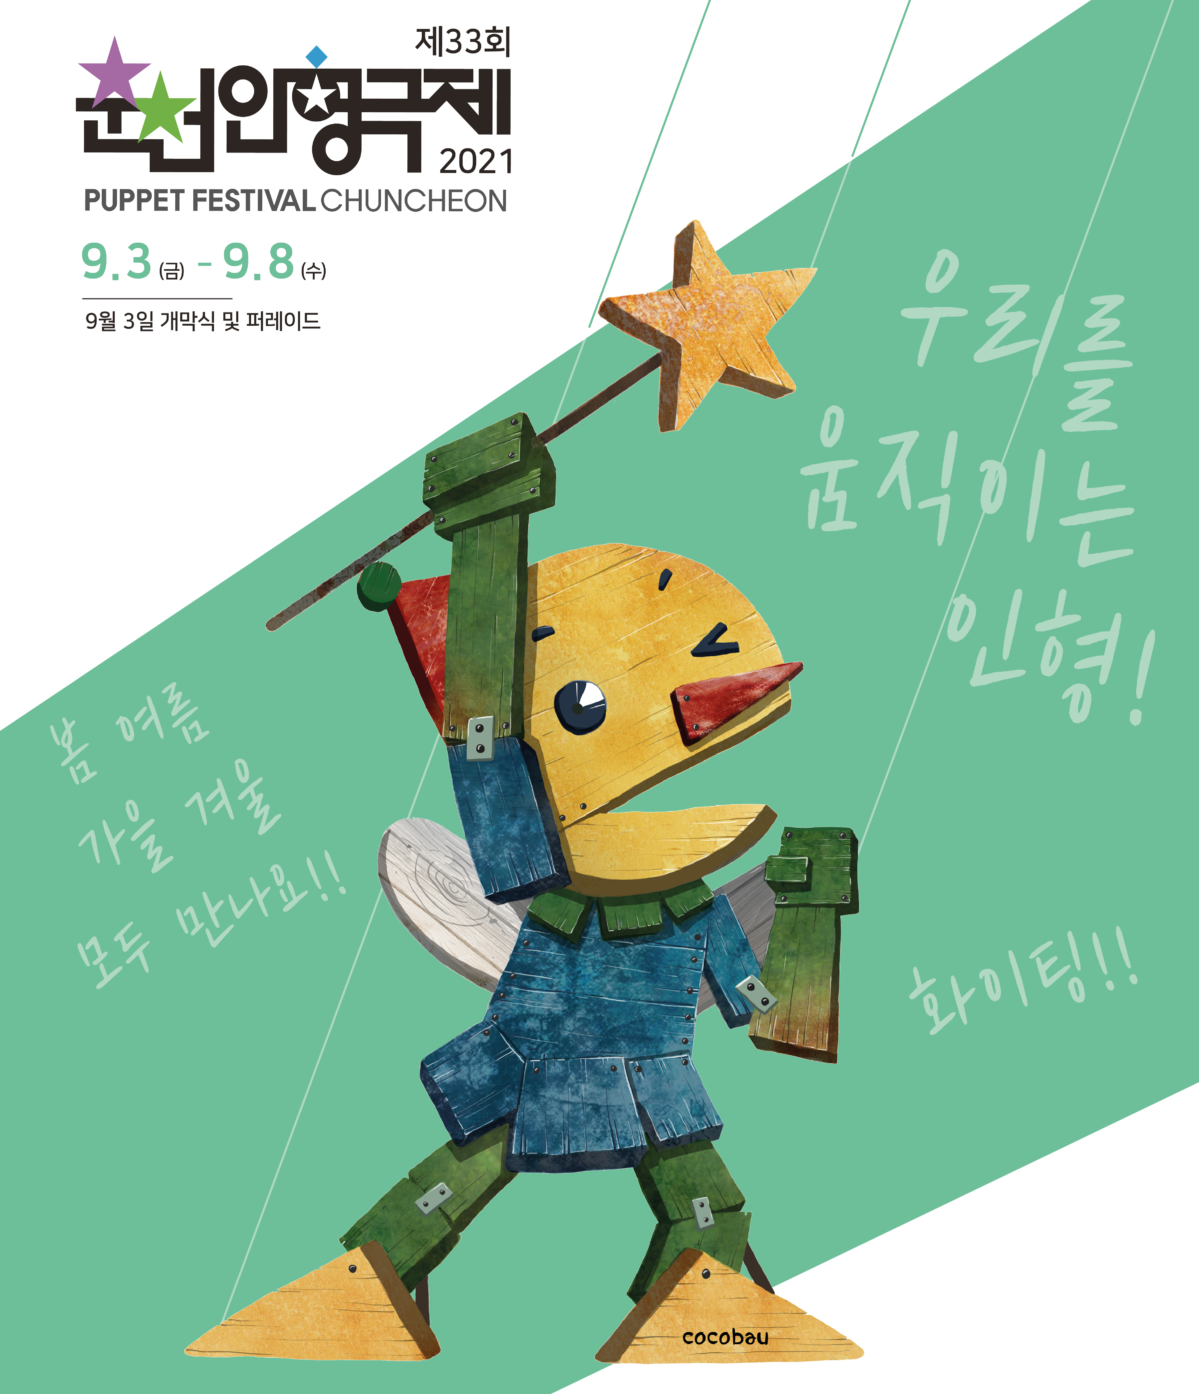 The 33th ChunCheon Puppet Festival